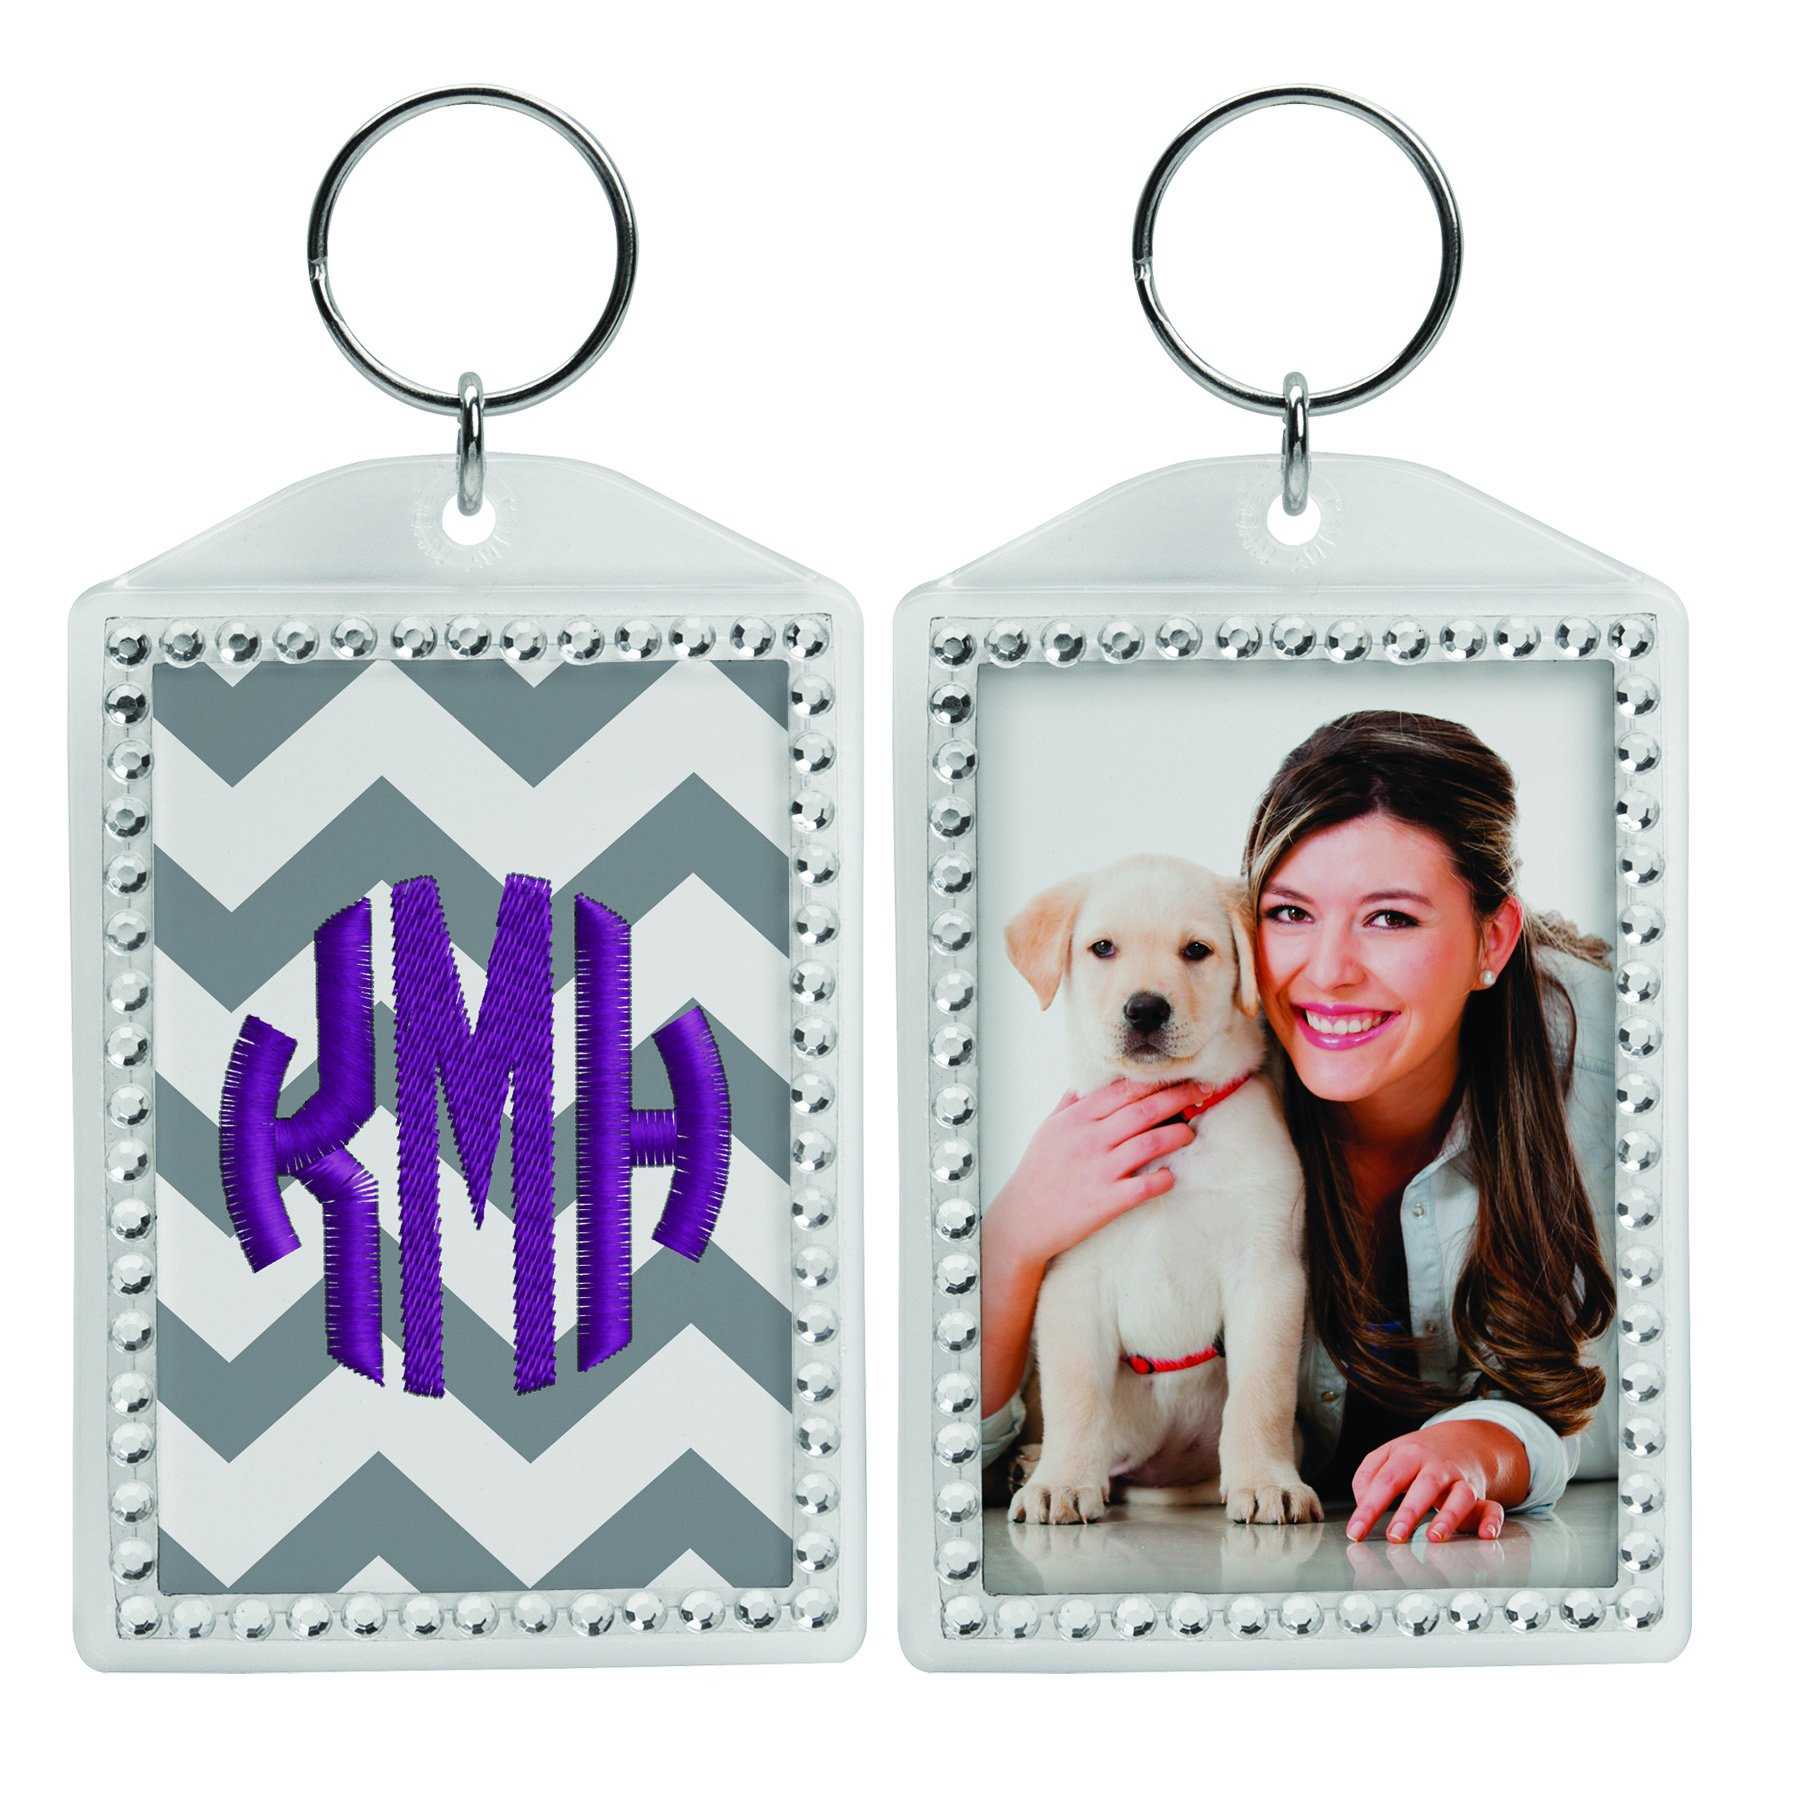 Rhinestone Acrylic Photo Snap-In Keychains - 72 Pack by Snapins